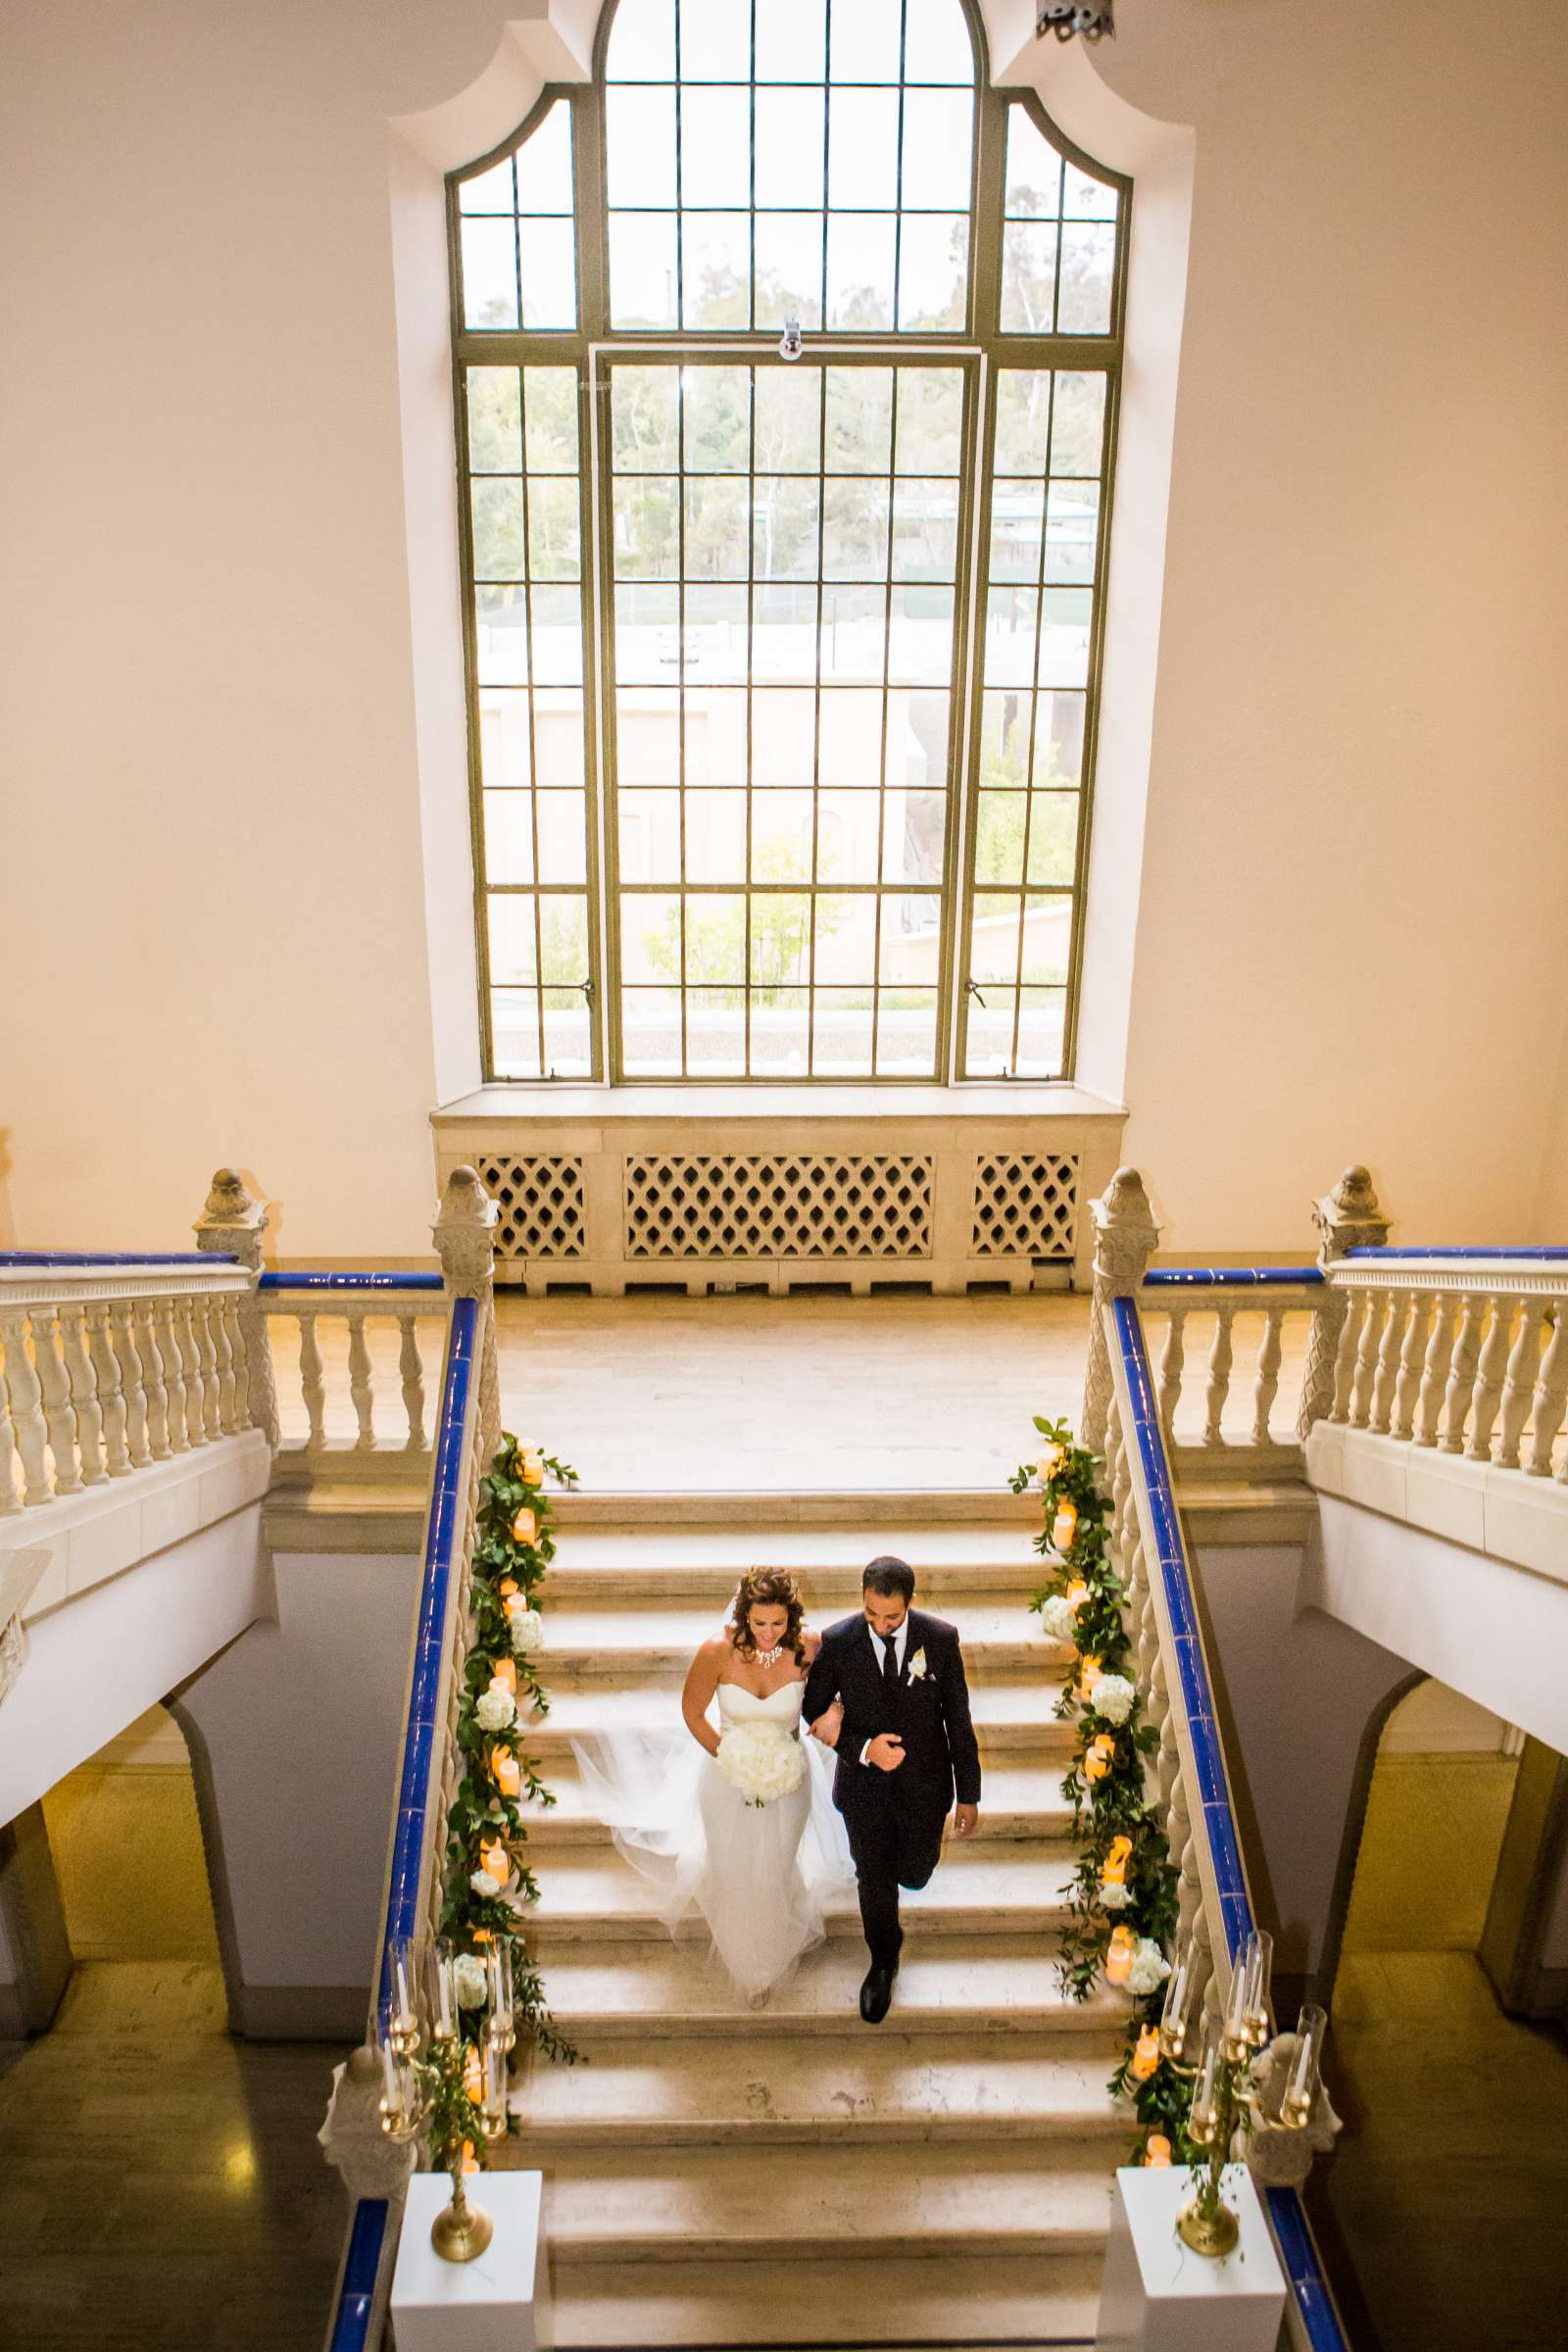 San Diego Museum of Art Wedding coordinated by First Comes Love Weddings & Events, Ruthie and Larry Wedding Photo #236798 by True Photography